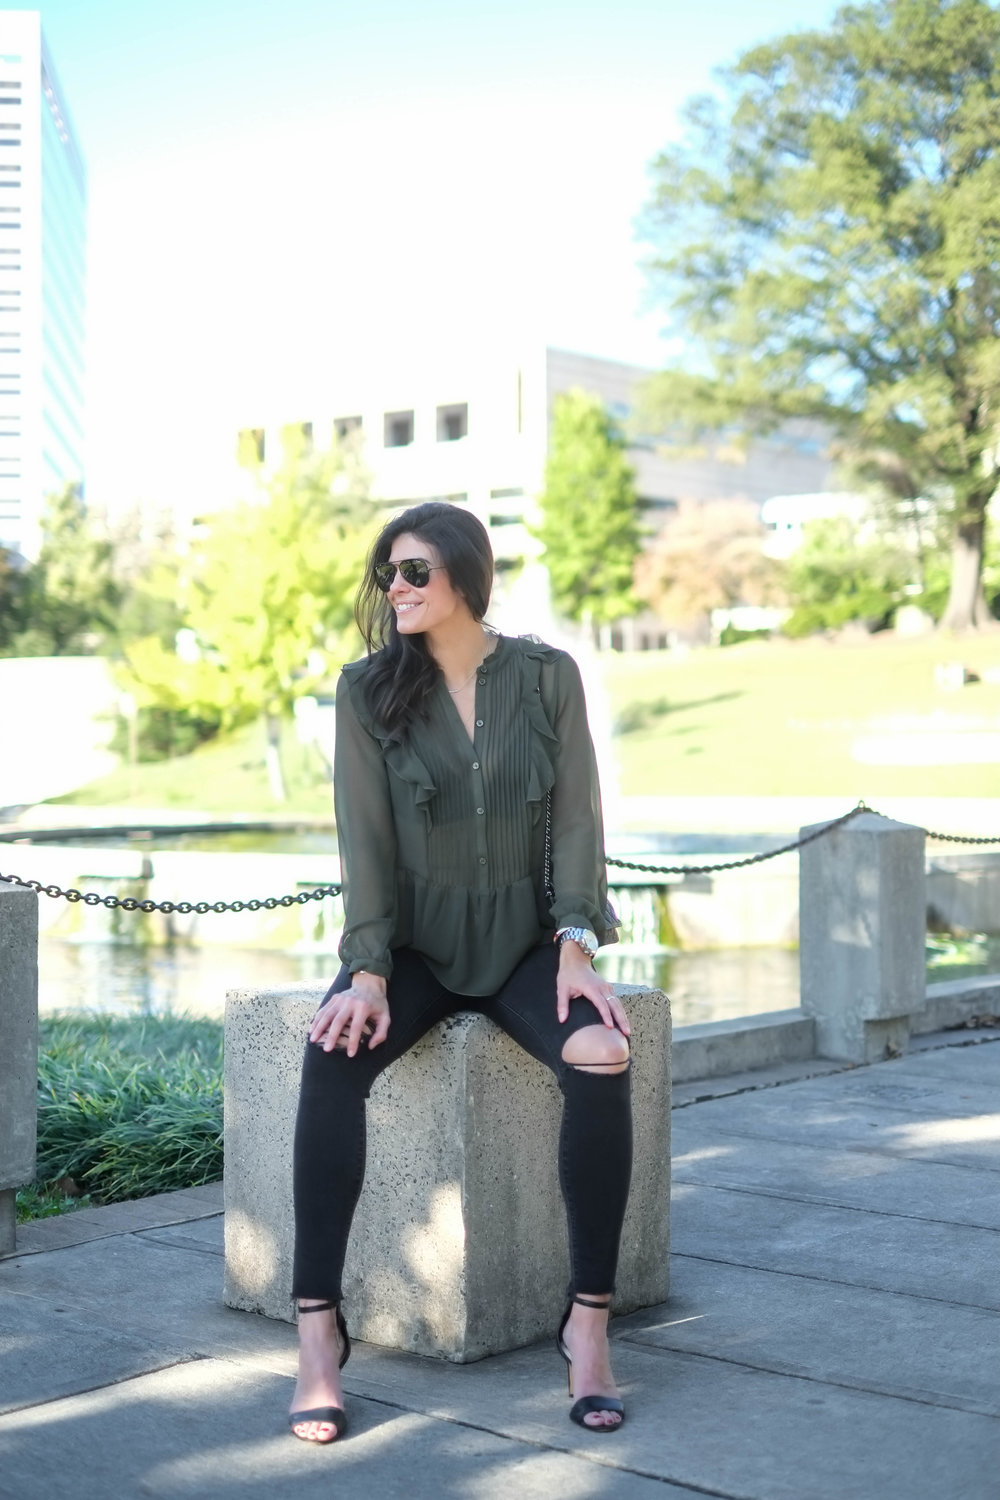 who-what-wear-collection-tuxedo-blouse-olive-green-lauren-schwaiger-style-blog.jpg